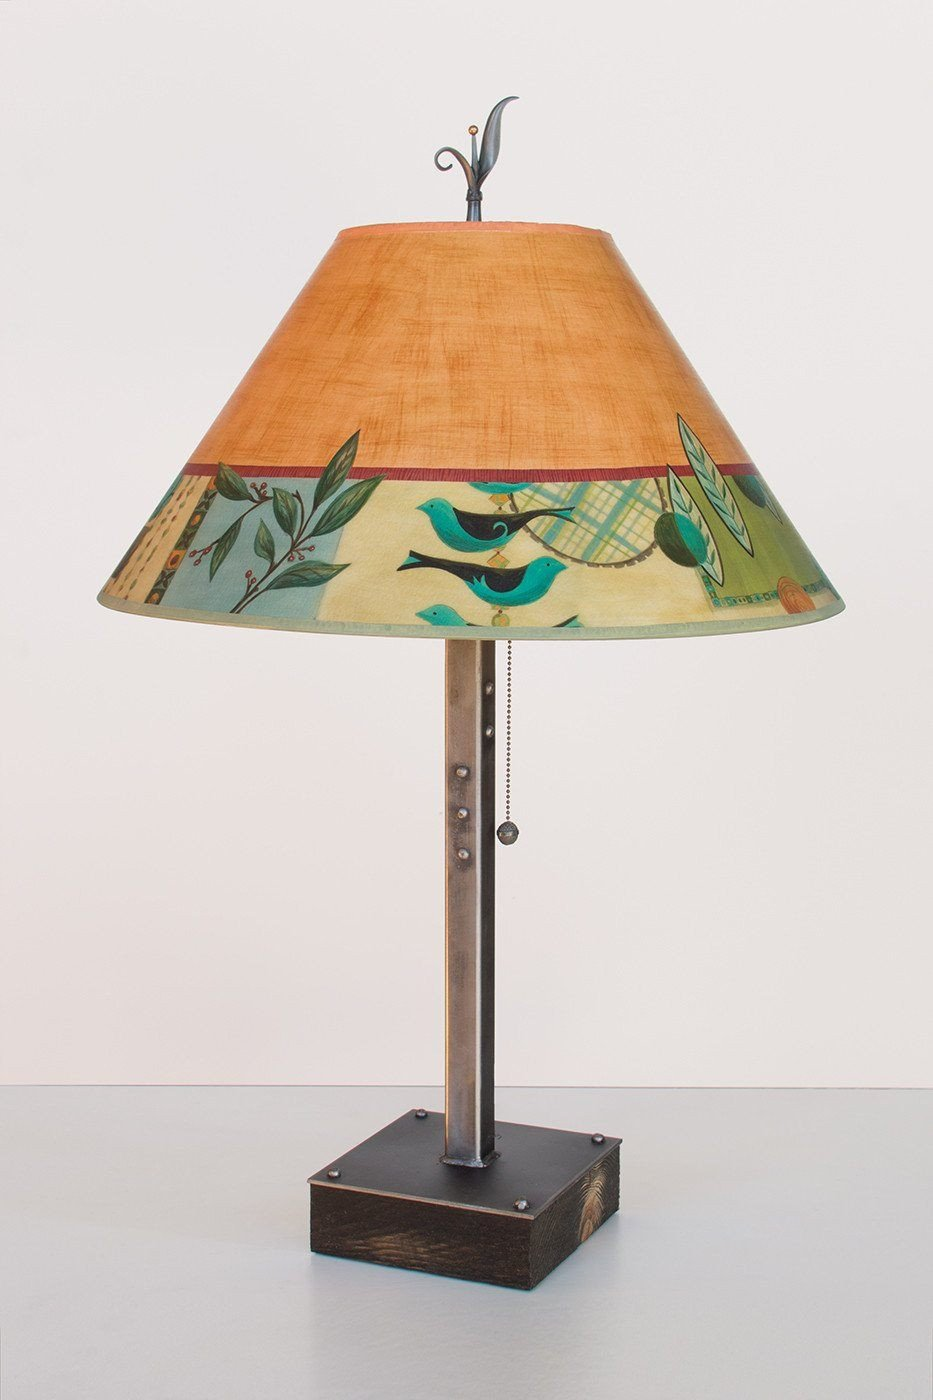 Steel Table Lamp on Wood with Large Conical Shade in New Capri Spice